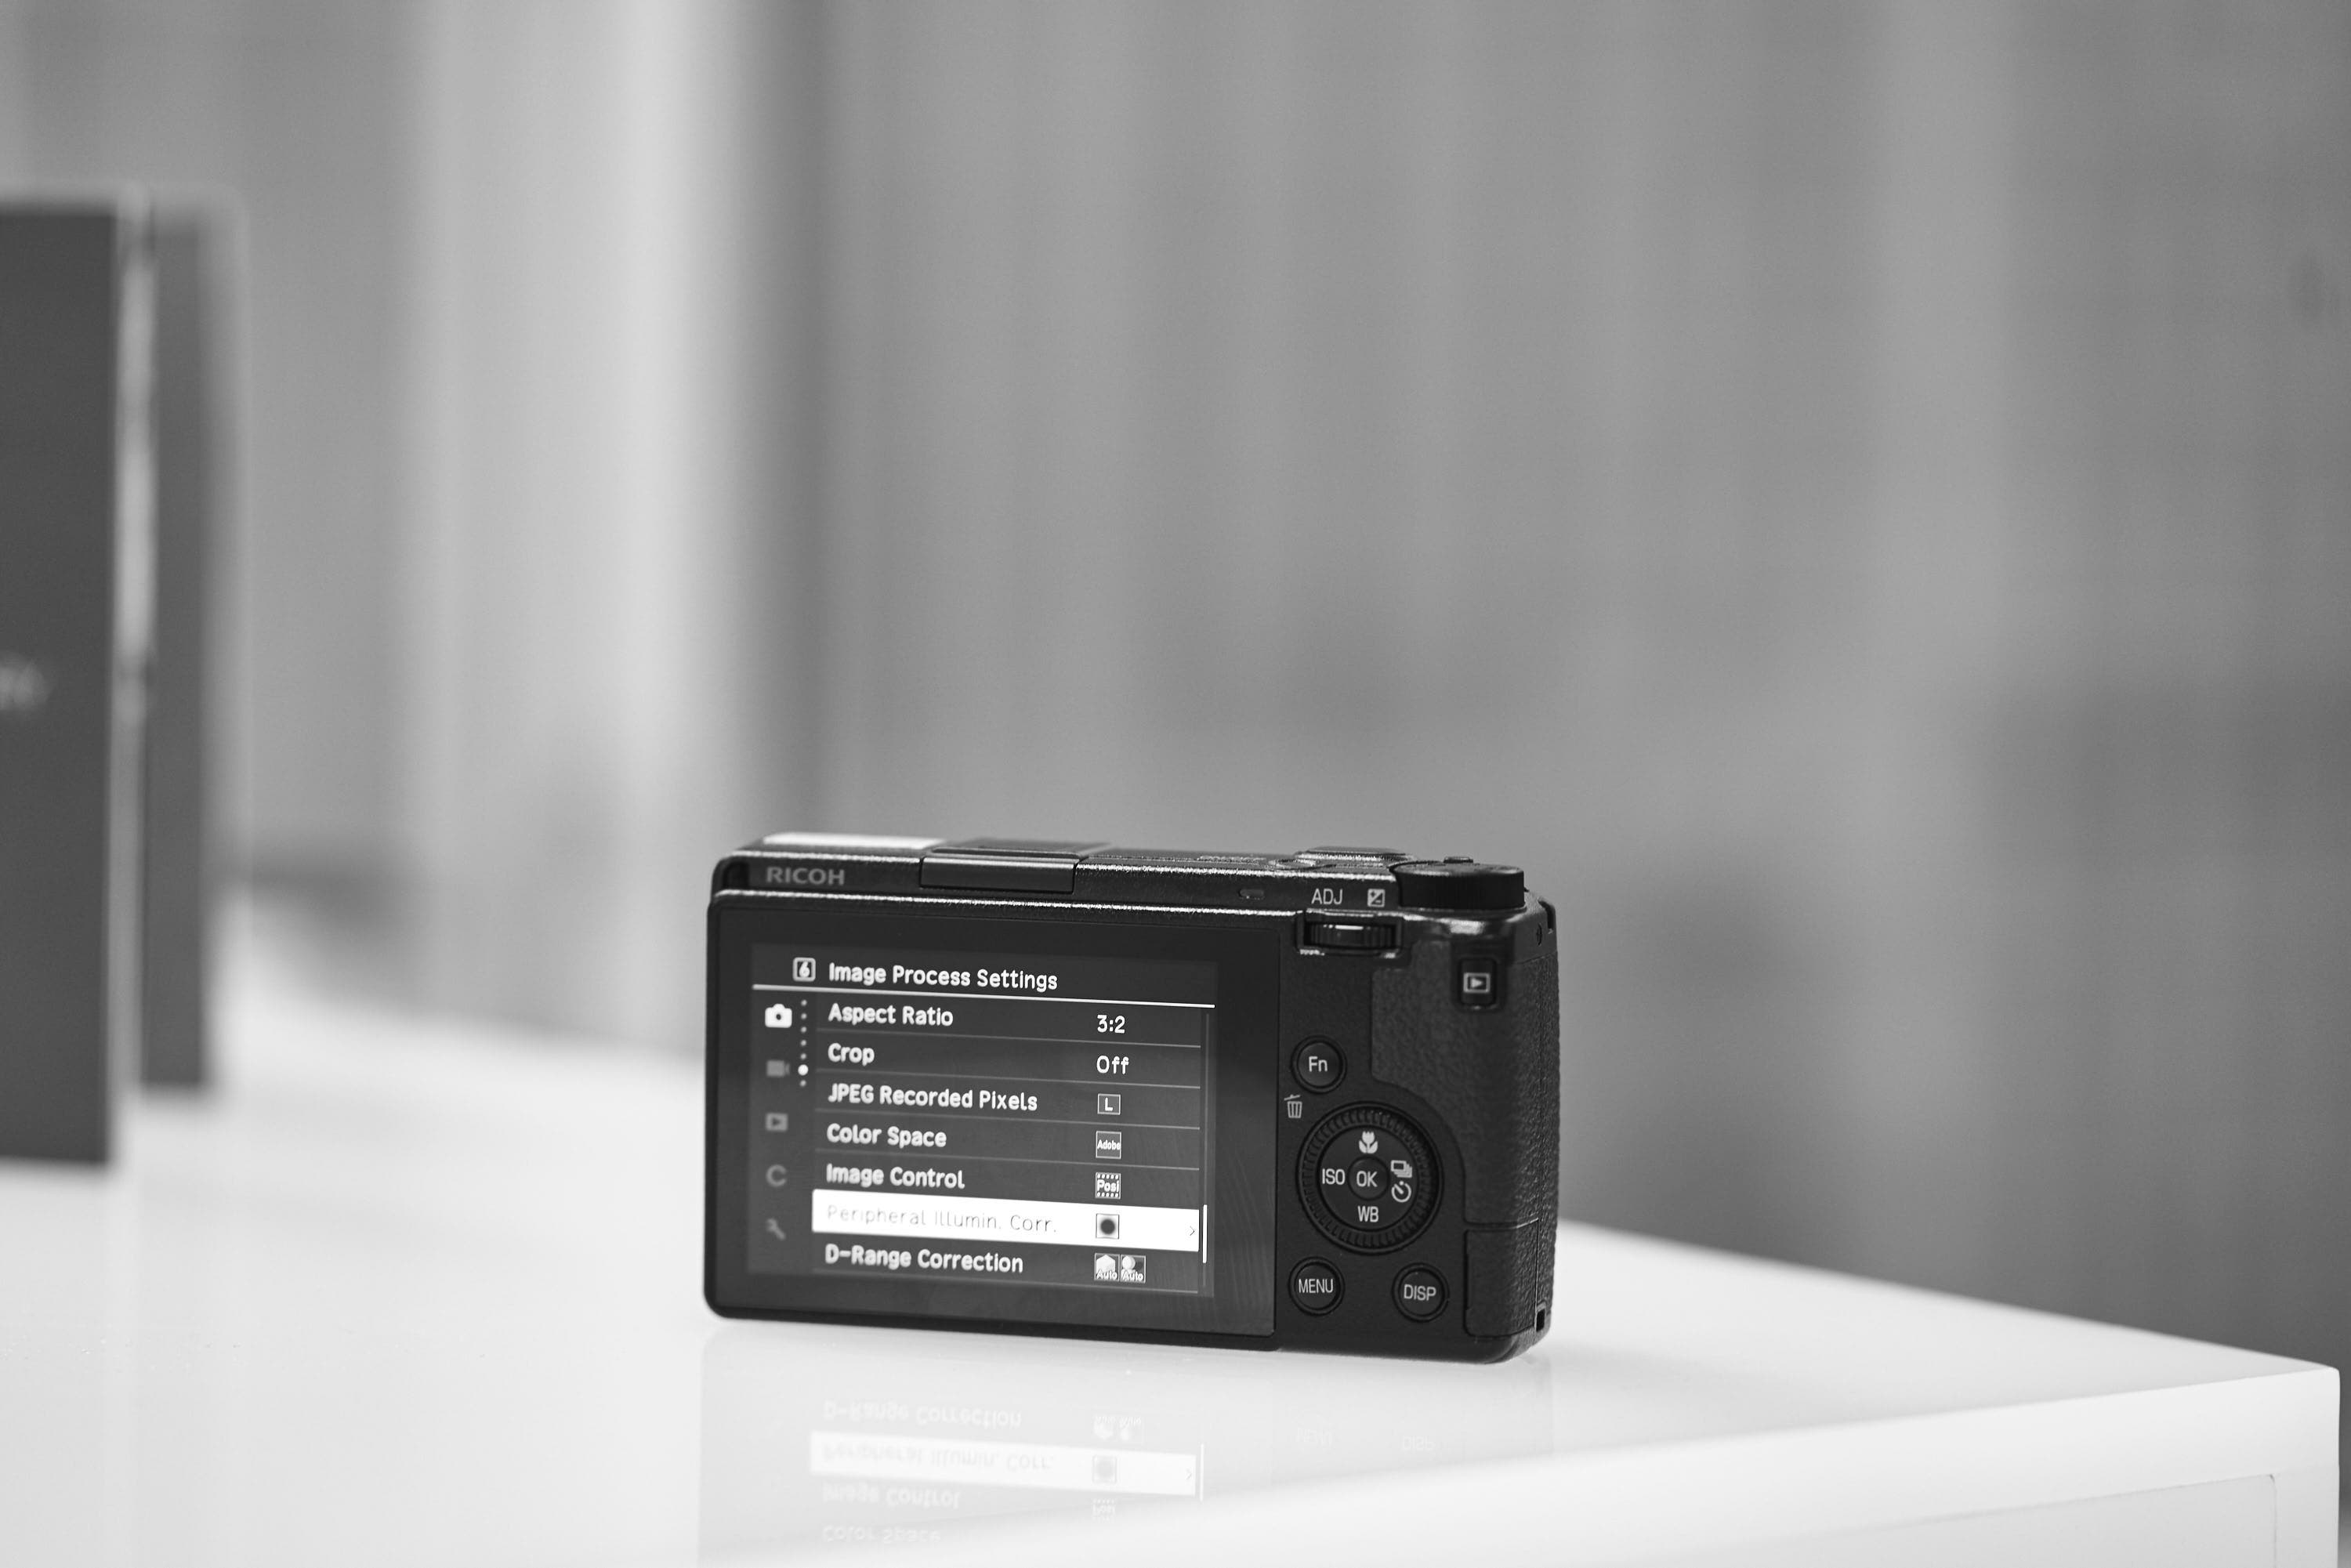 The menu system of the ricoh gr iii is very much like the previous menu with some new additions these new additions have more to do with customization of